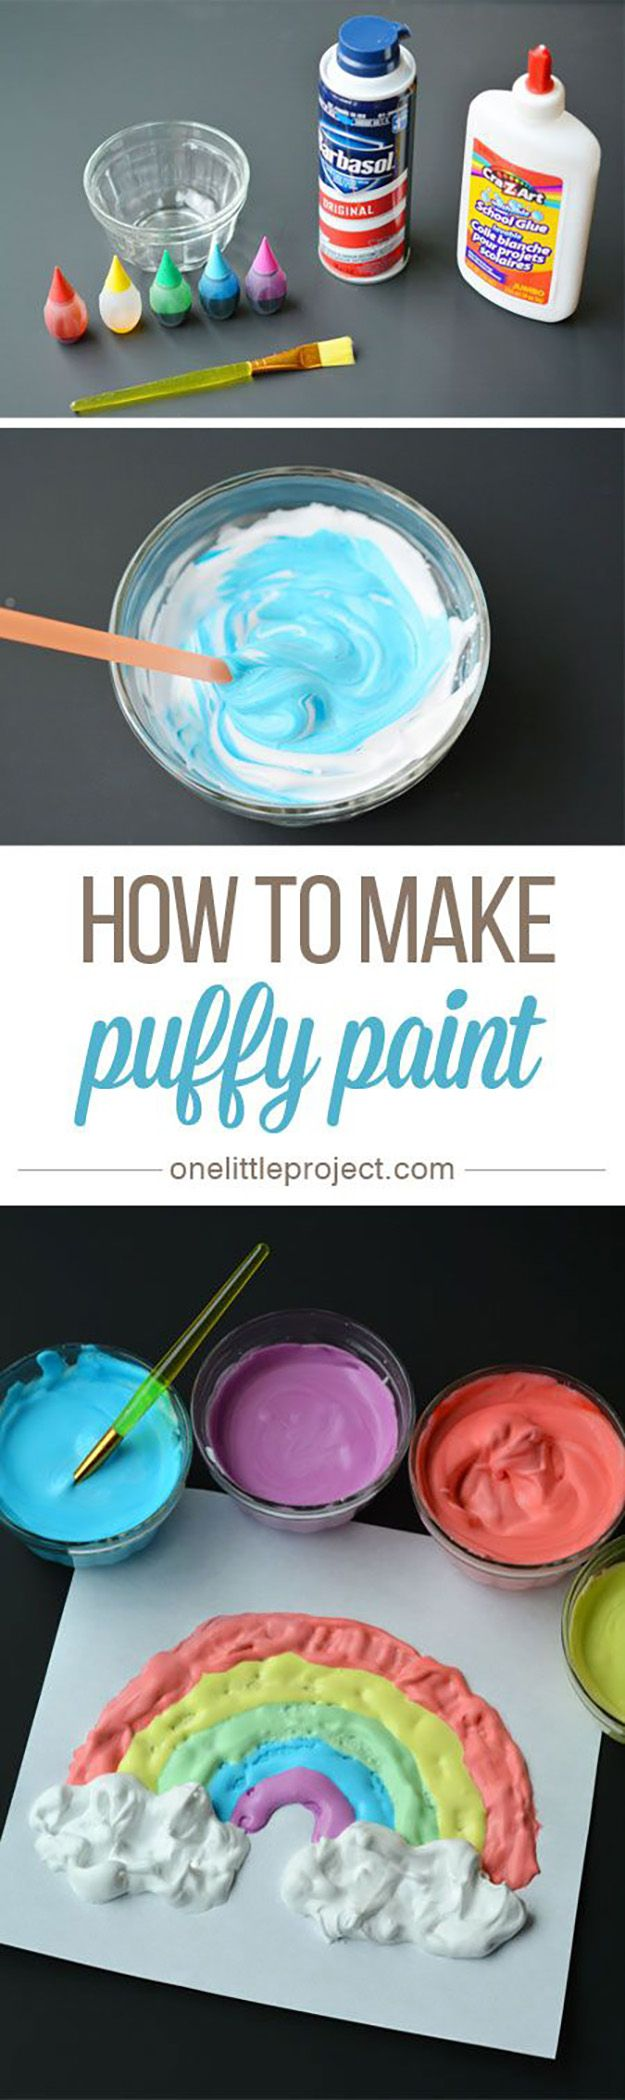 Easy DIY Paint Your Kids Will Go Crazy For